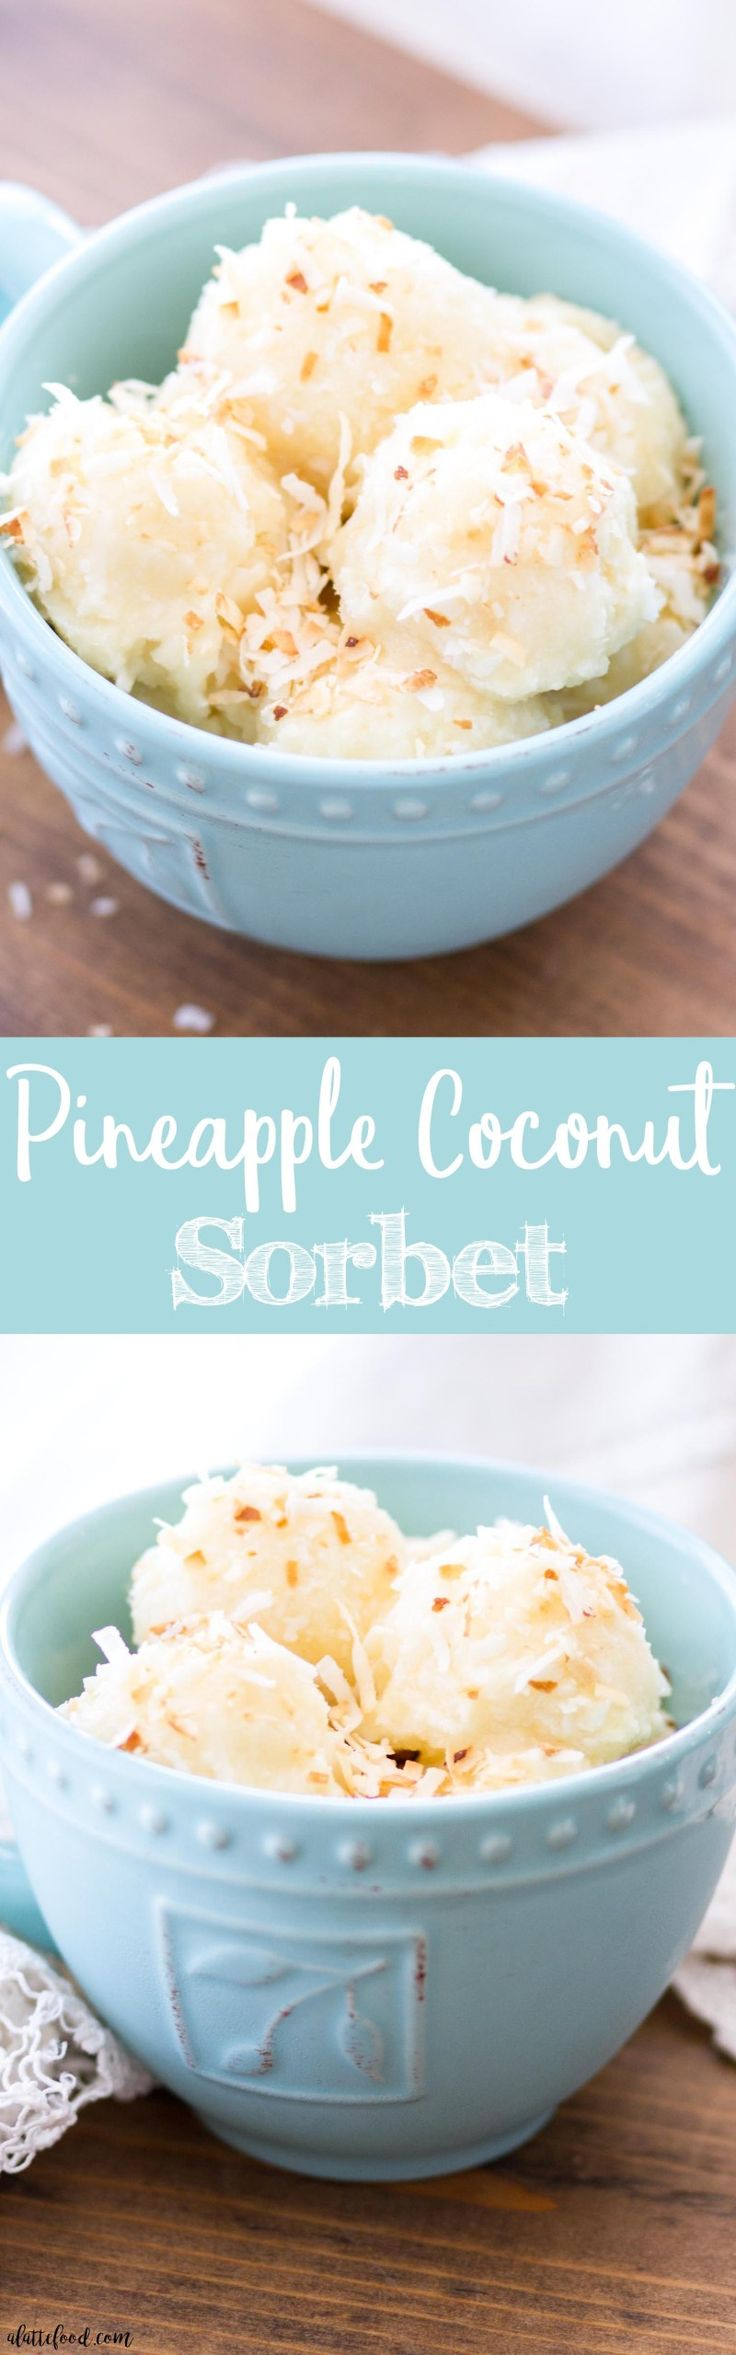 This homemade pineapple coconut sorbet is made with only 6-ingredients and is refined sugar-free and dairy-free! This easy frozen dessert is easy to make, full of flavor, and totally dreamy!